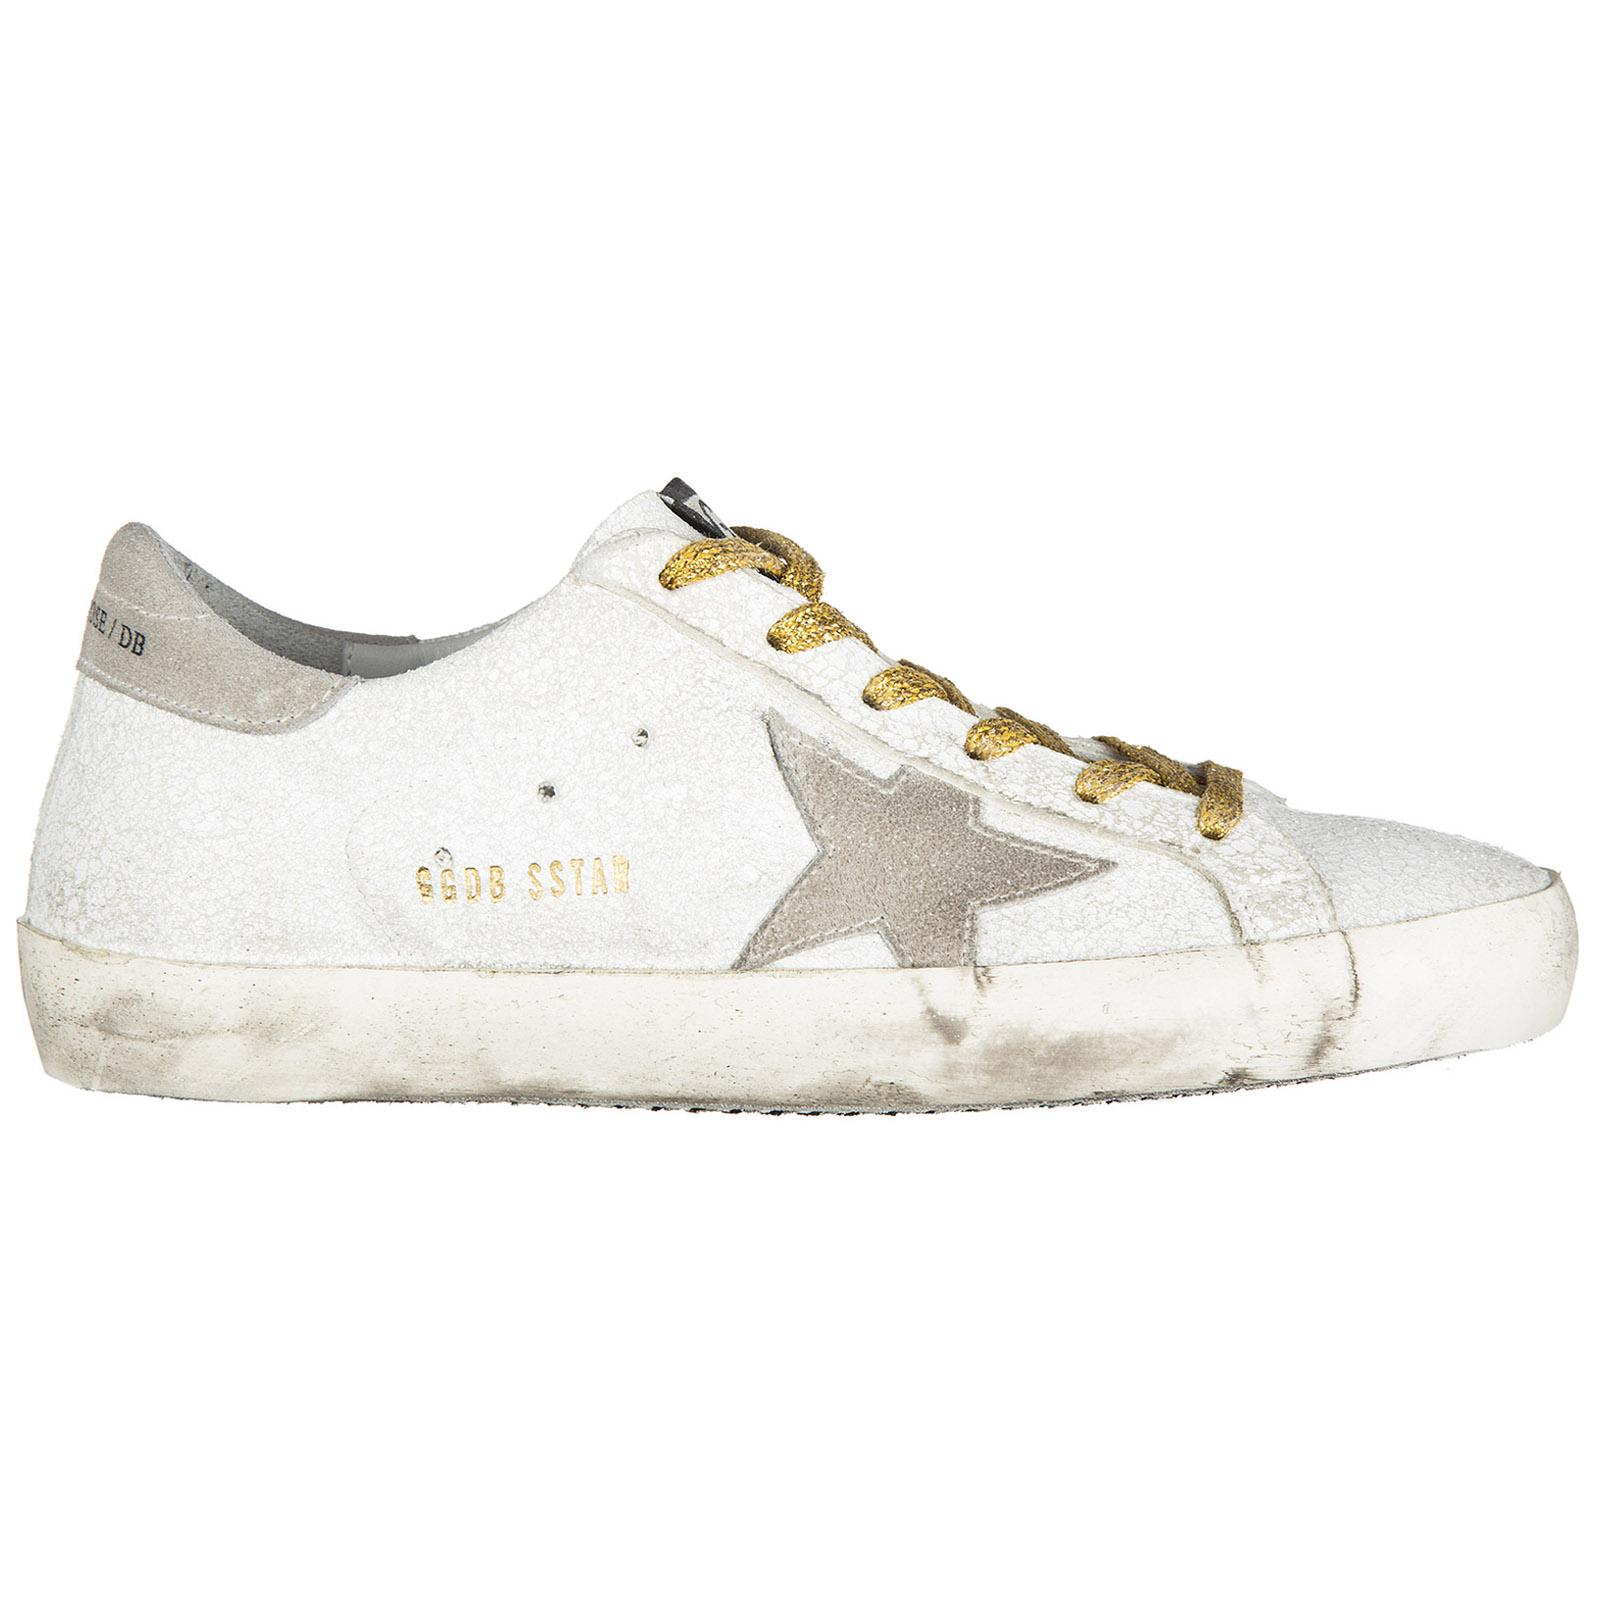 Golden Goose Women's Shoes Leather Trainers Sneakers Superstar In White